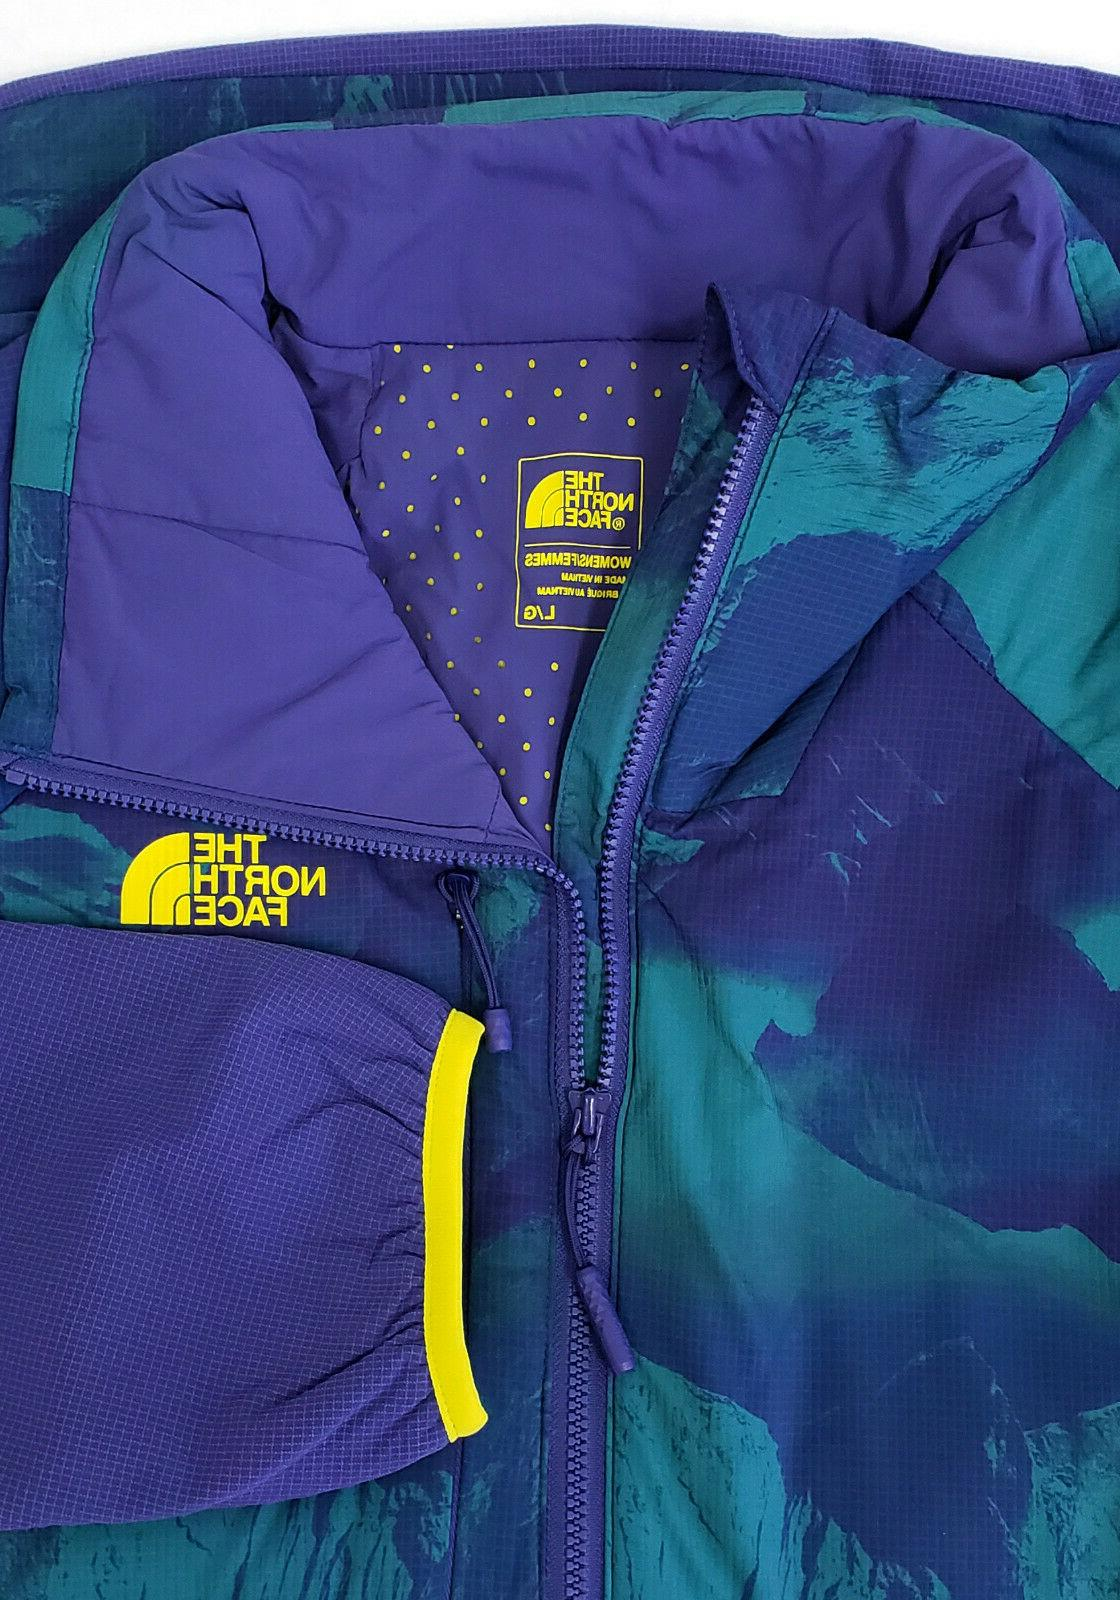 $199 Face Women's Ventrix Insulated Hiking Size L